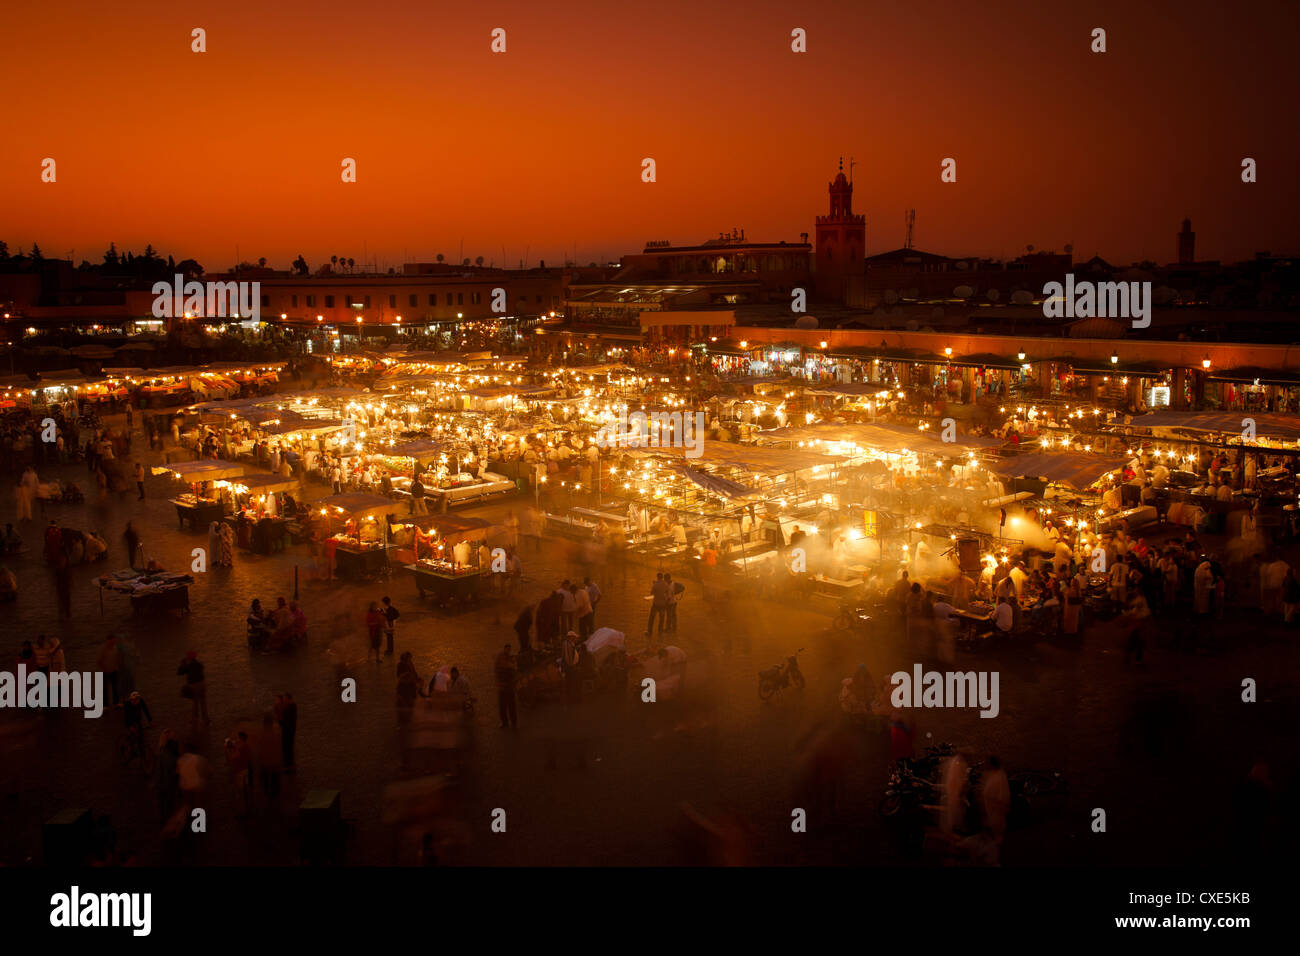 View at sunset across Djemaa El Fna, Marrakech, Morocco, North Africa, Africa Stock Photo